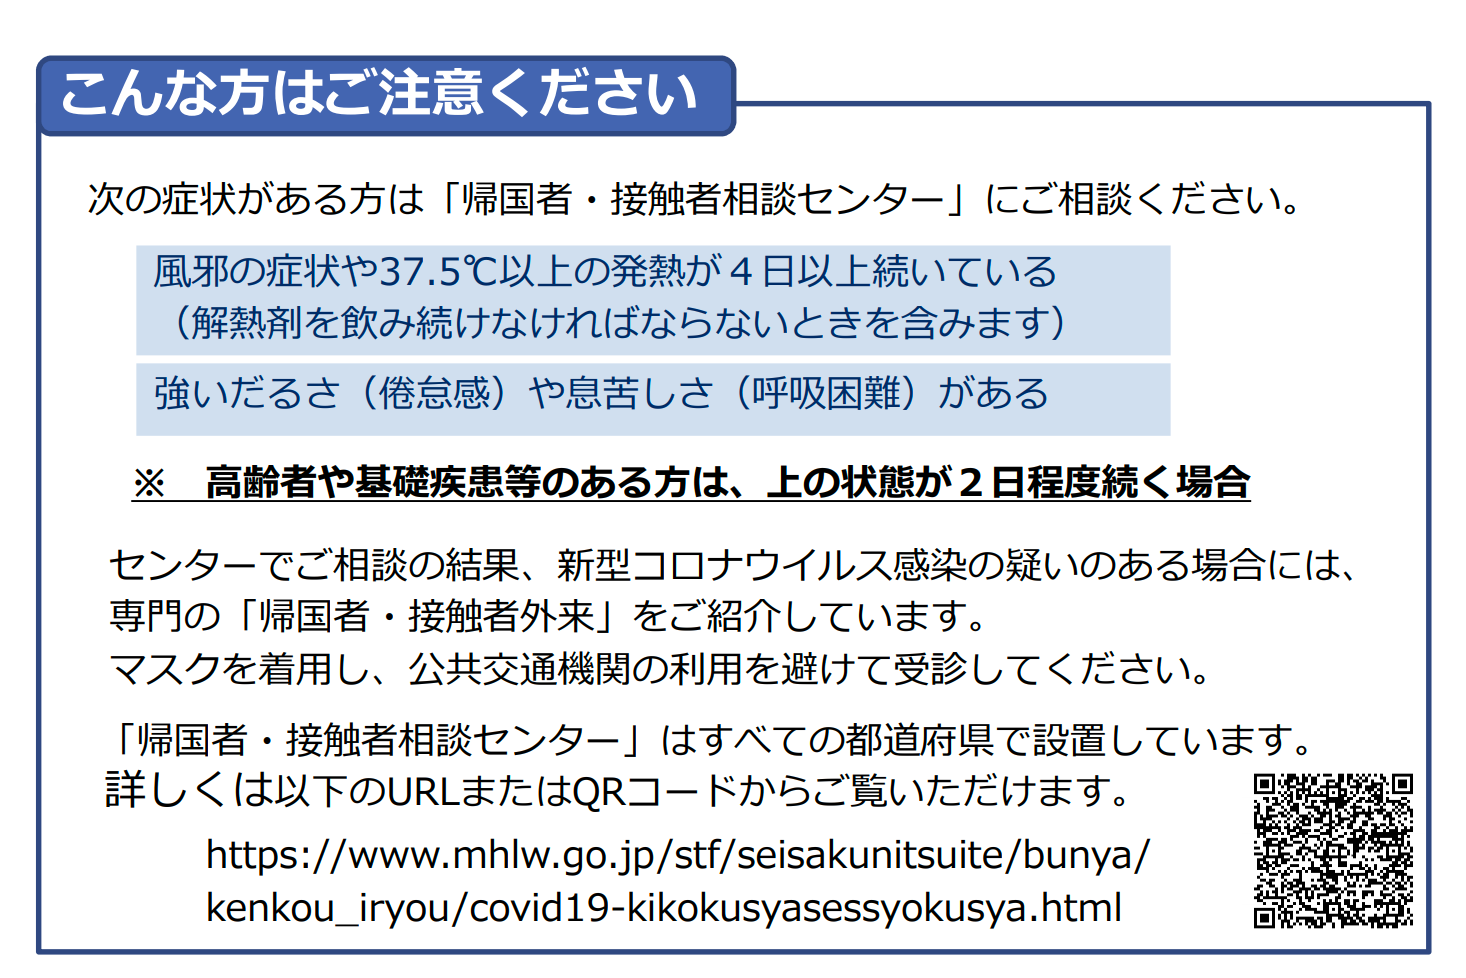 """Ministry of Health, Labor and Welfare """"How to prevent the new coronavirus"""" (2 / 17 released, https://www.mhlw.go.jp/stf/seisakunitsuite/bunya/0000164708_00001.html)"""